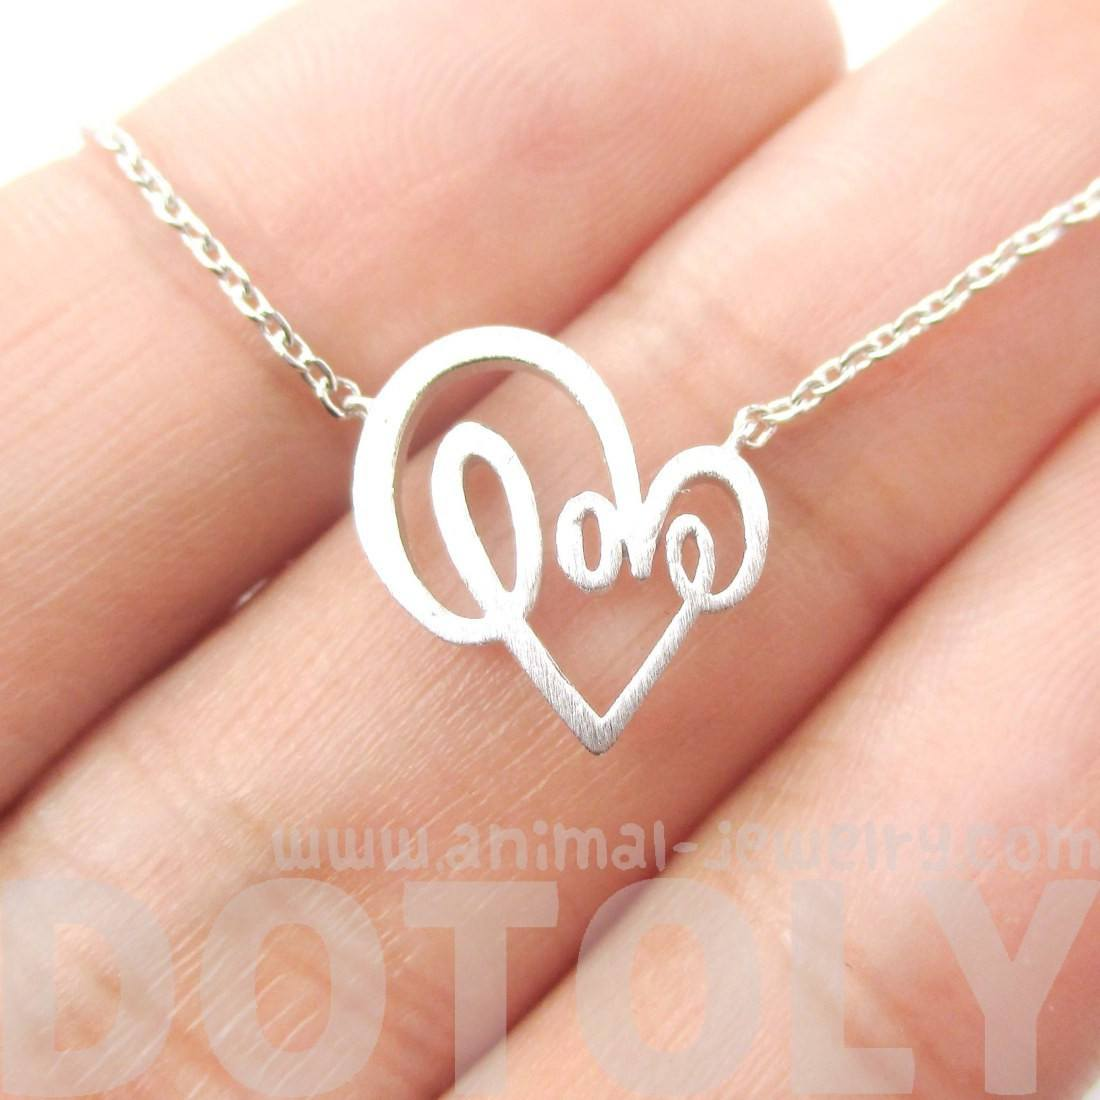 Cursive Love Typography Forming A Heart Shaped Silver Charm Necklace